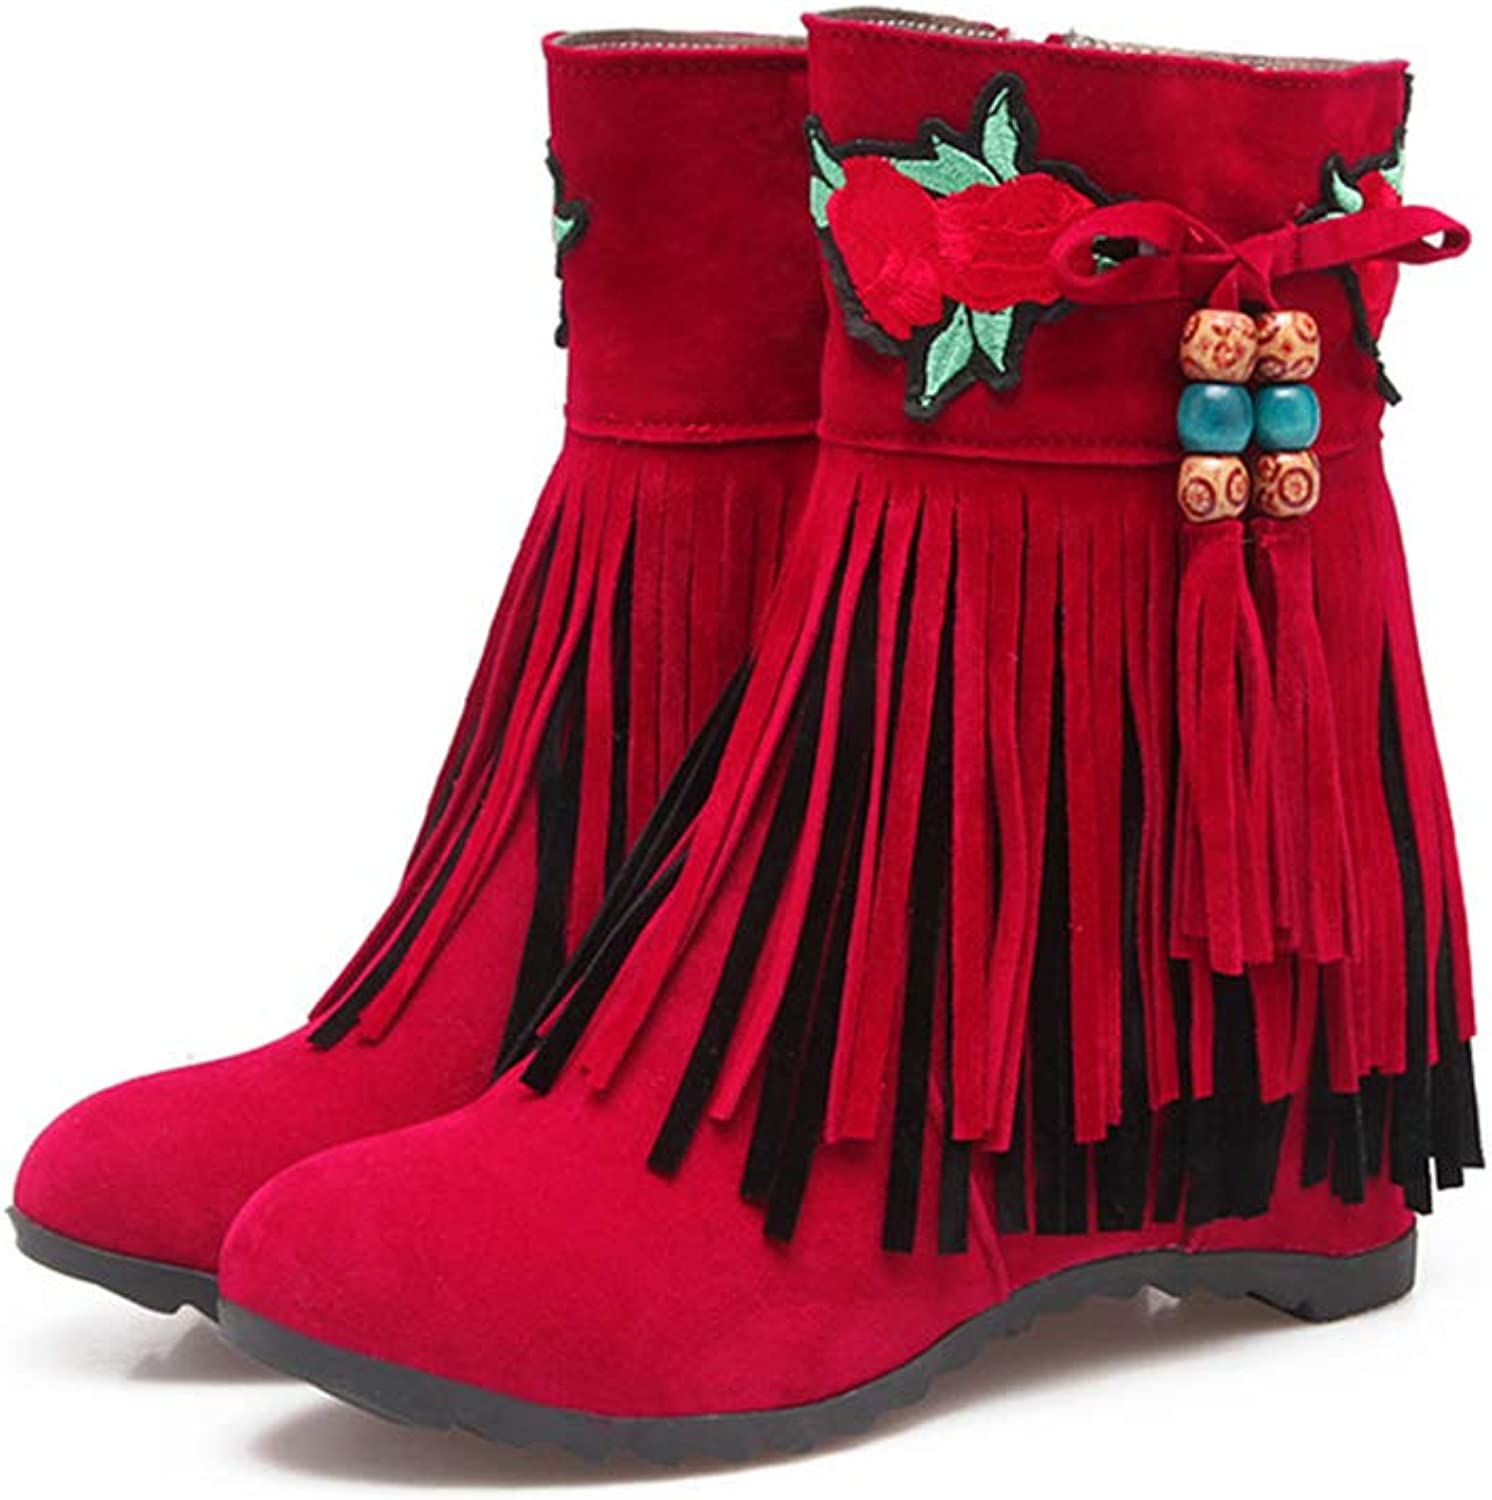 T-JULY Fashion Ankle Boots for Women Round Toe Fringe Height Increasing Autumn Winter Boots Ladies shoes